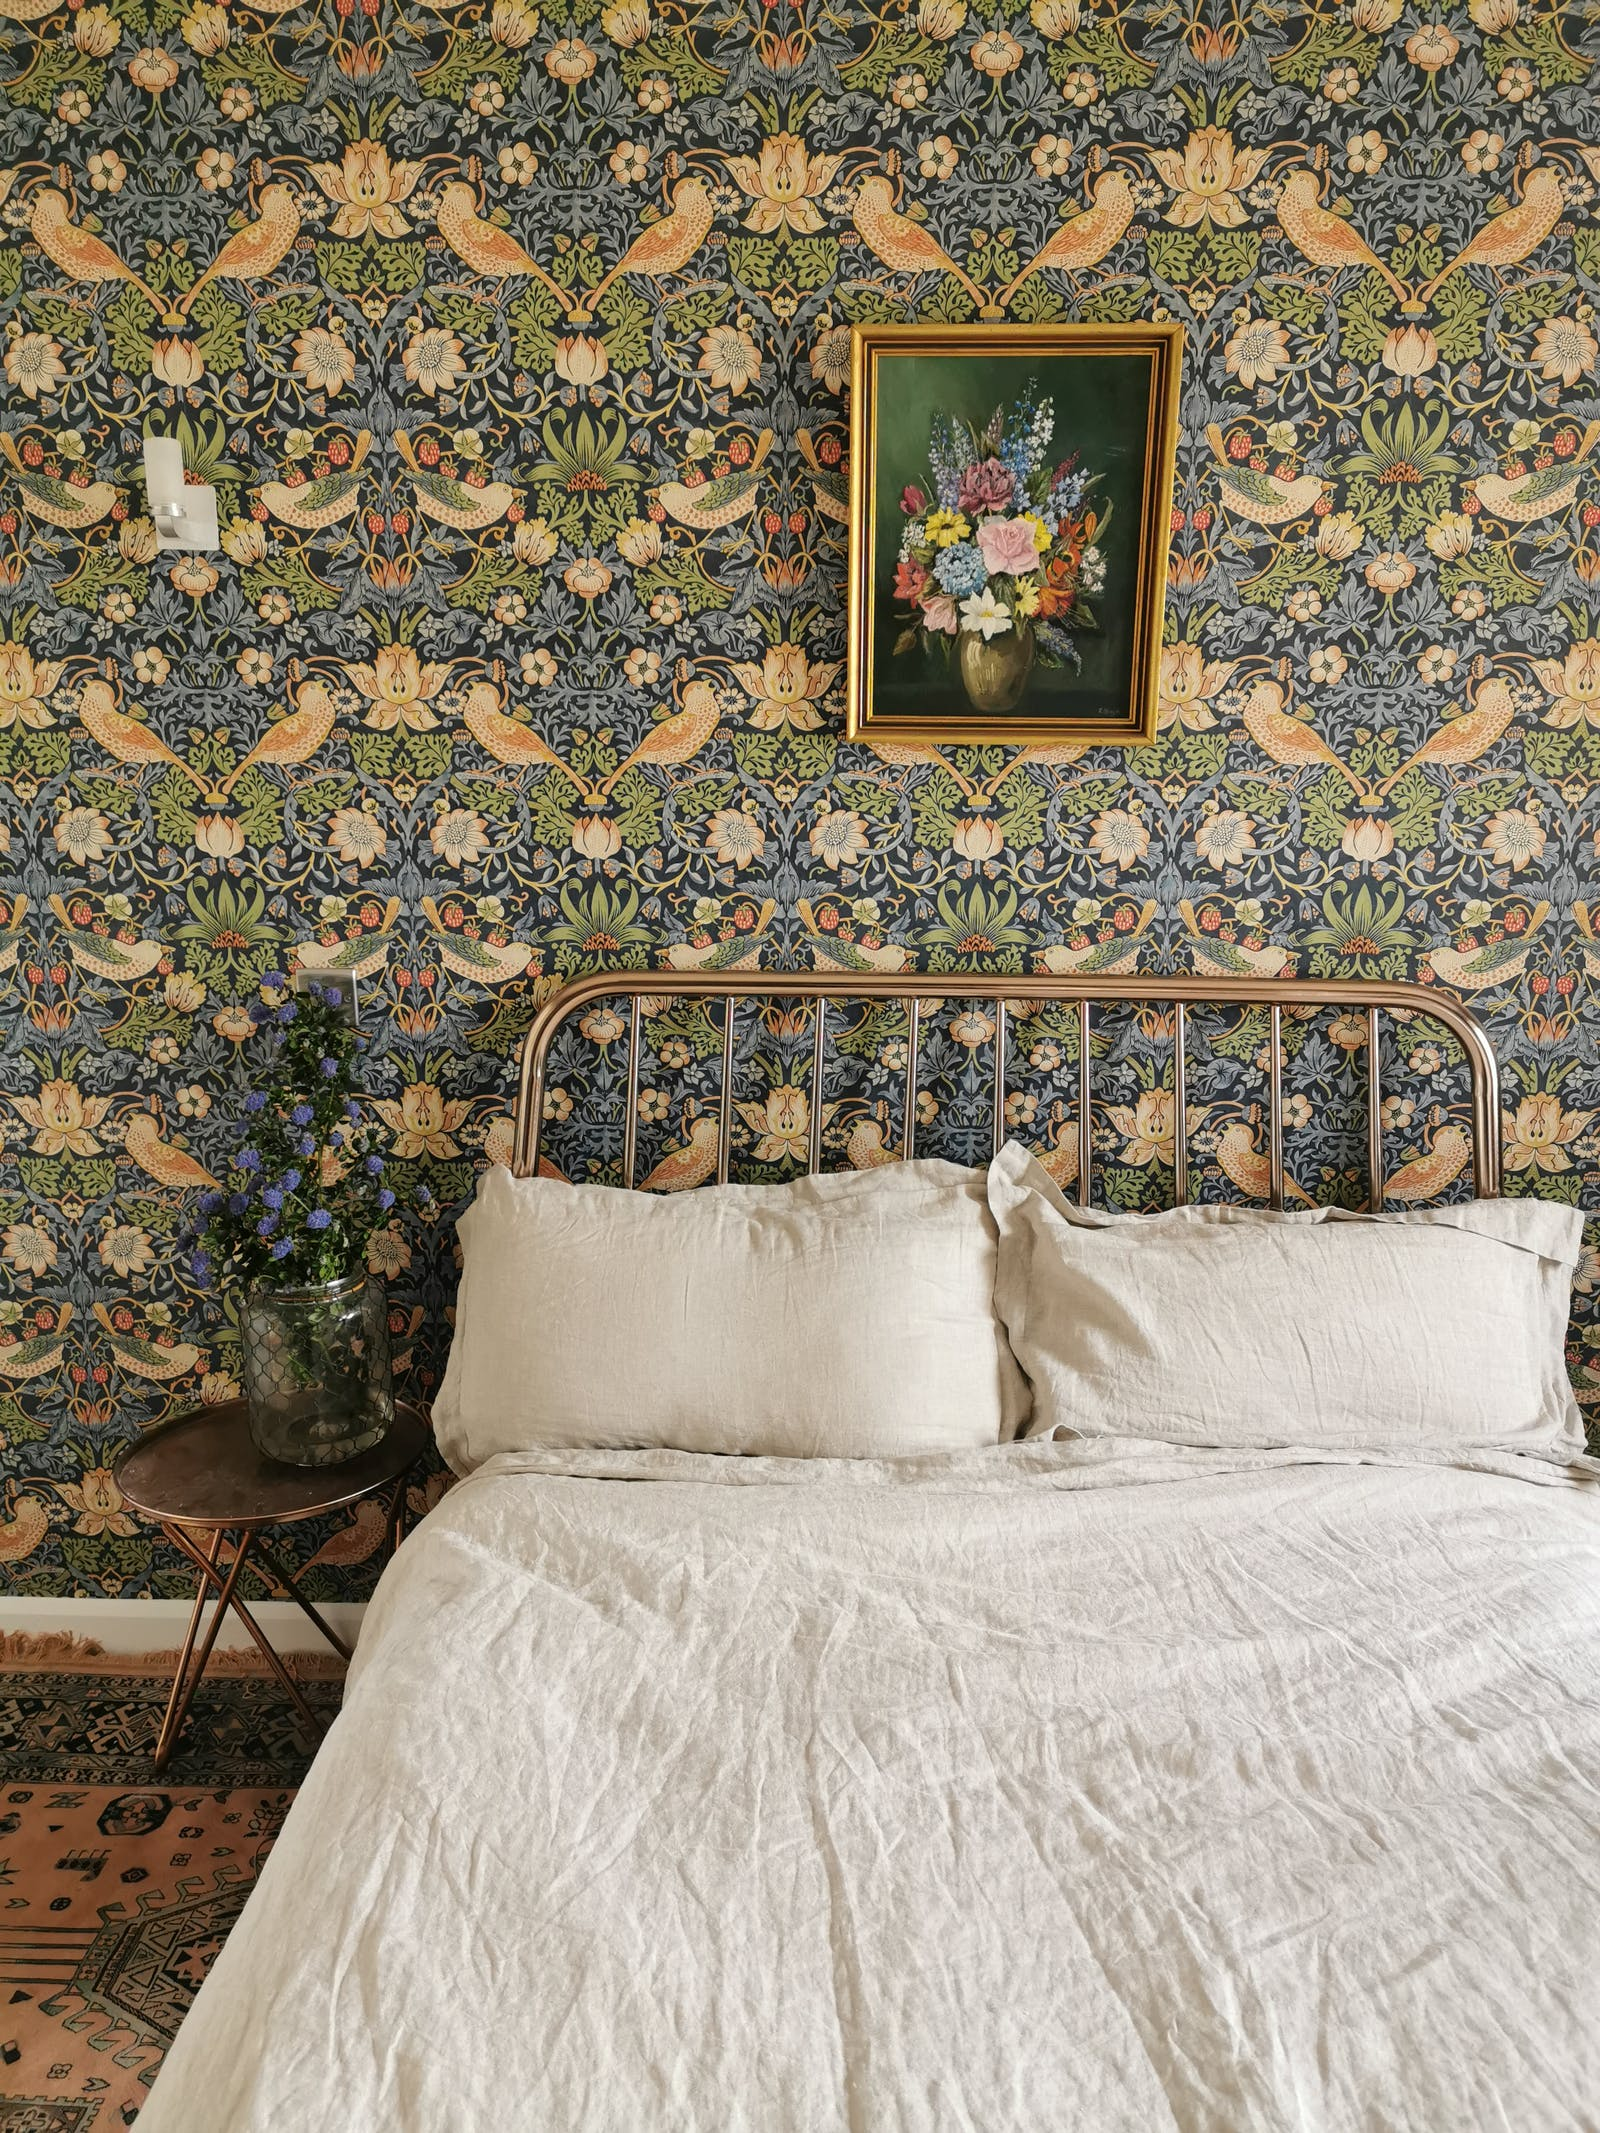 bedroom with patterned floral wallpaper behind it and artwork with flowers